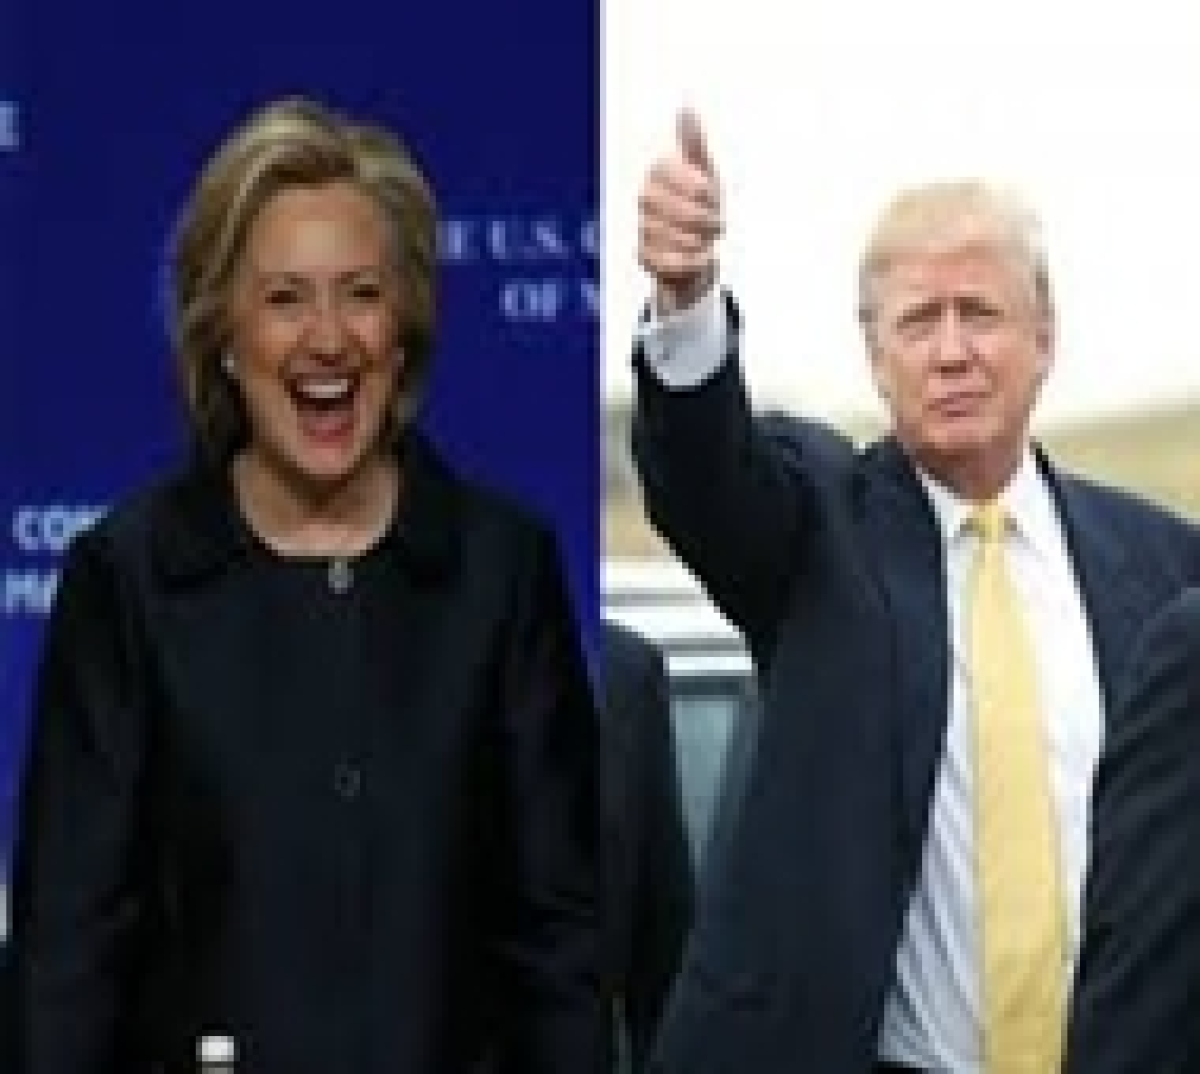 Trump, Clinton poised for White House duel after sweeping wins